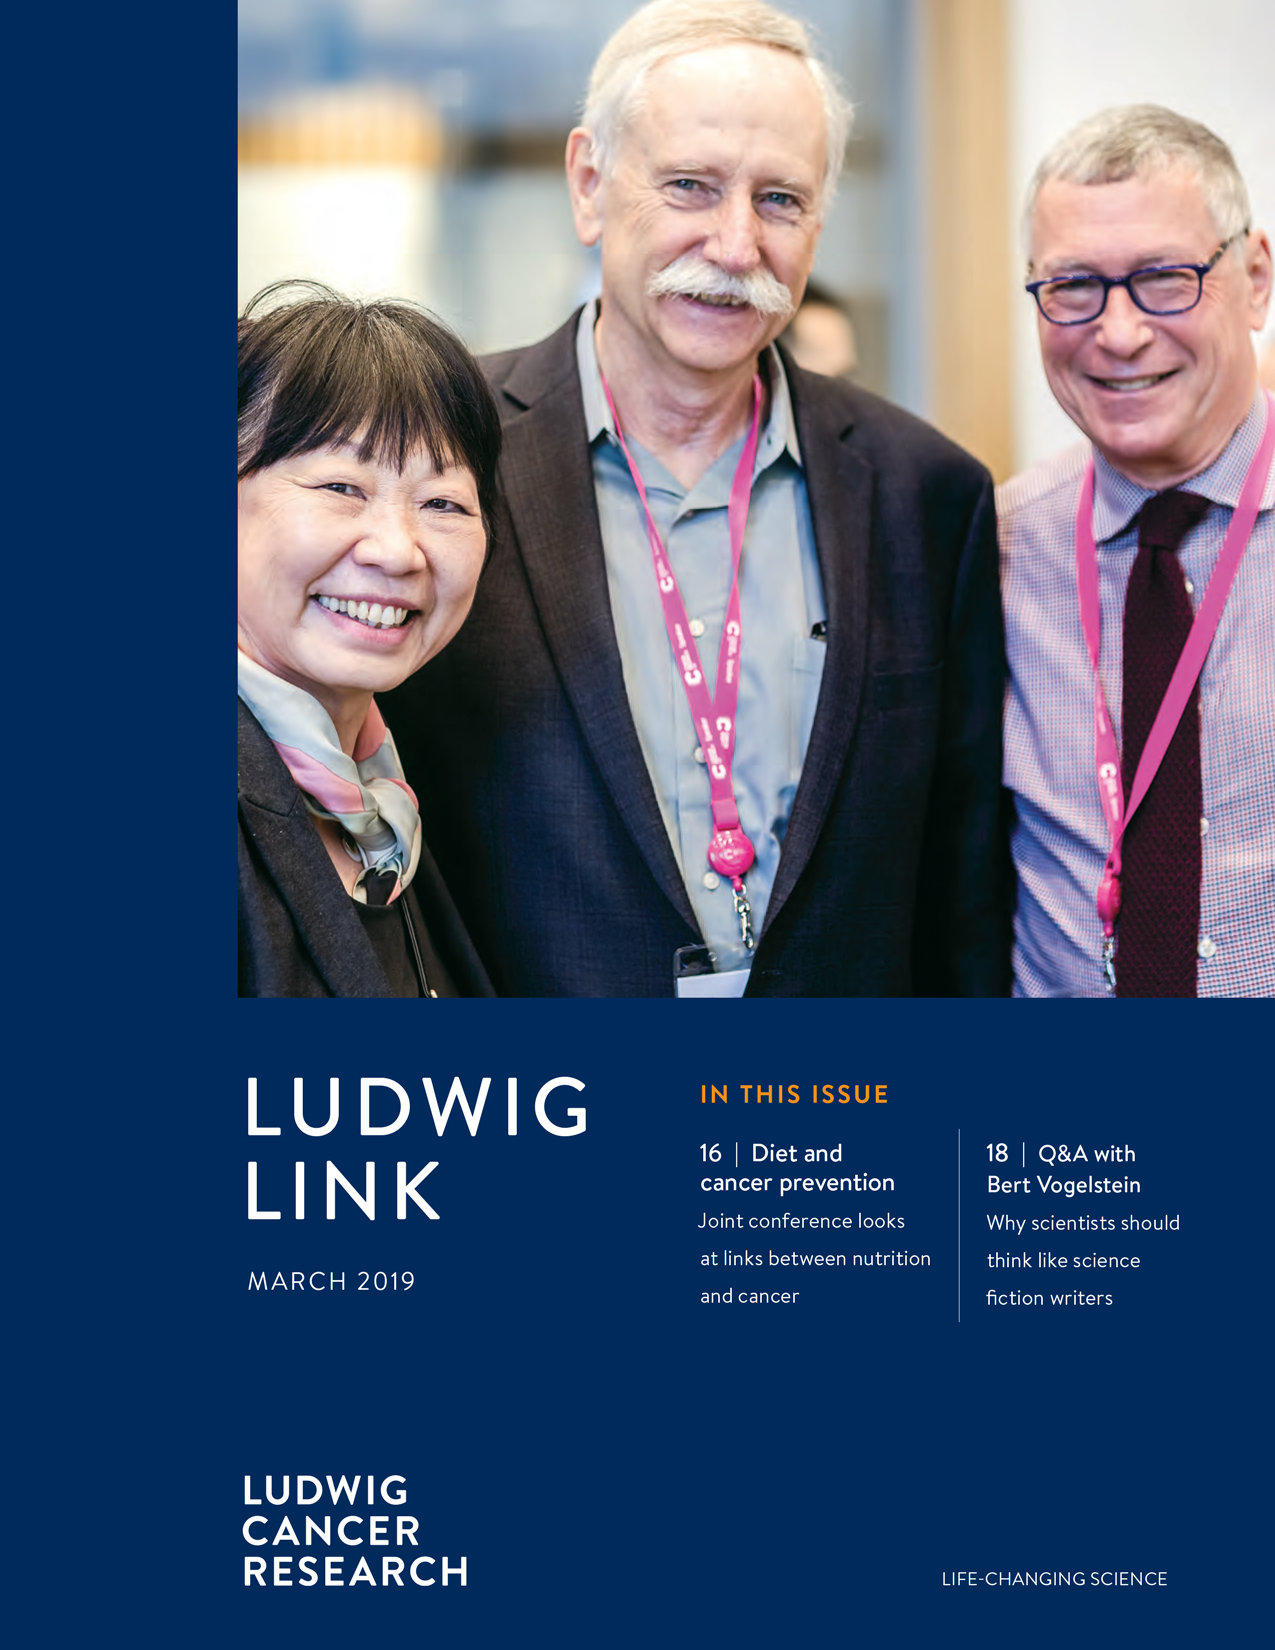 Ludwig Link March 2019 cover